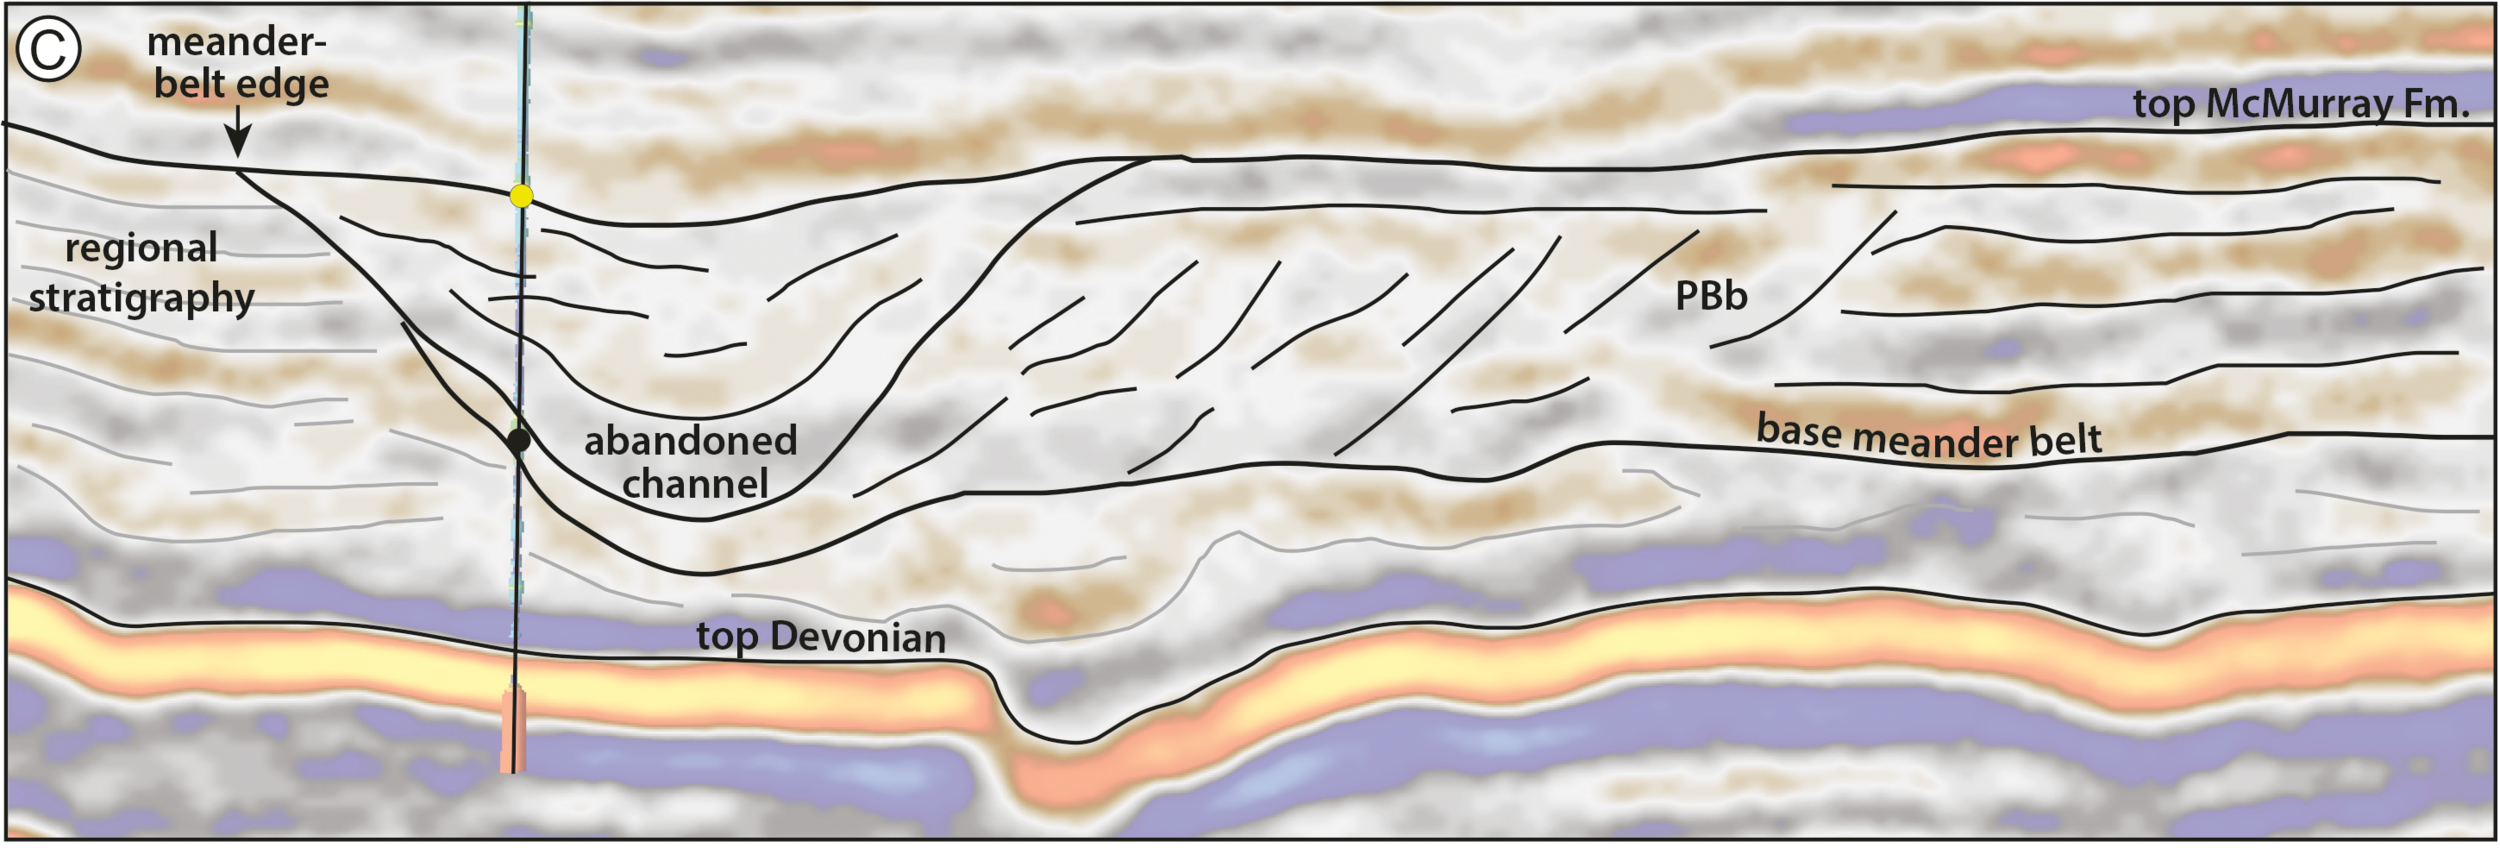 Detail from Figure 12 from Durkin et al (2017), showing a seismic section through the McMurray Formation. Most of the abandoned channels are filled with mudstone (really a siltstone). The dipping heterolithic strata of the point bars, so obvious in horizon slices, are quite subtle in section. ©2017, SEPM (Society for Sedimentary Geology) and licensed CC-BY.